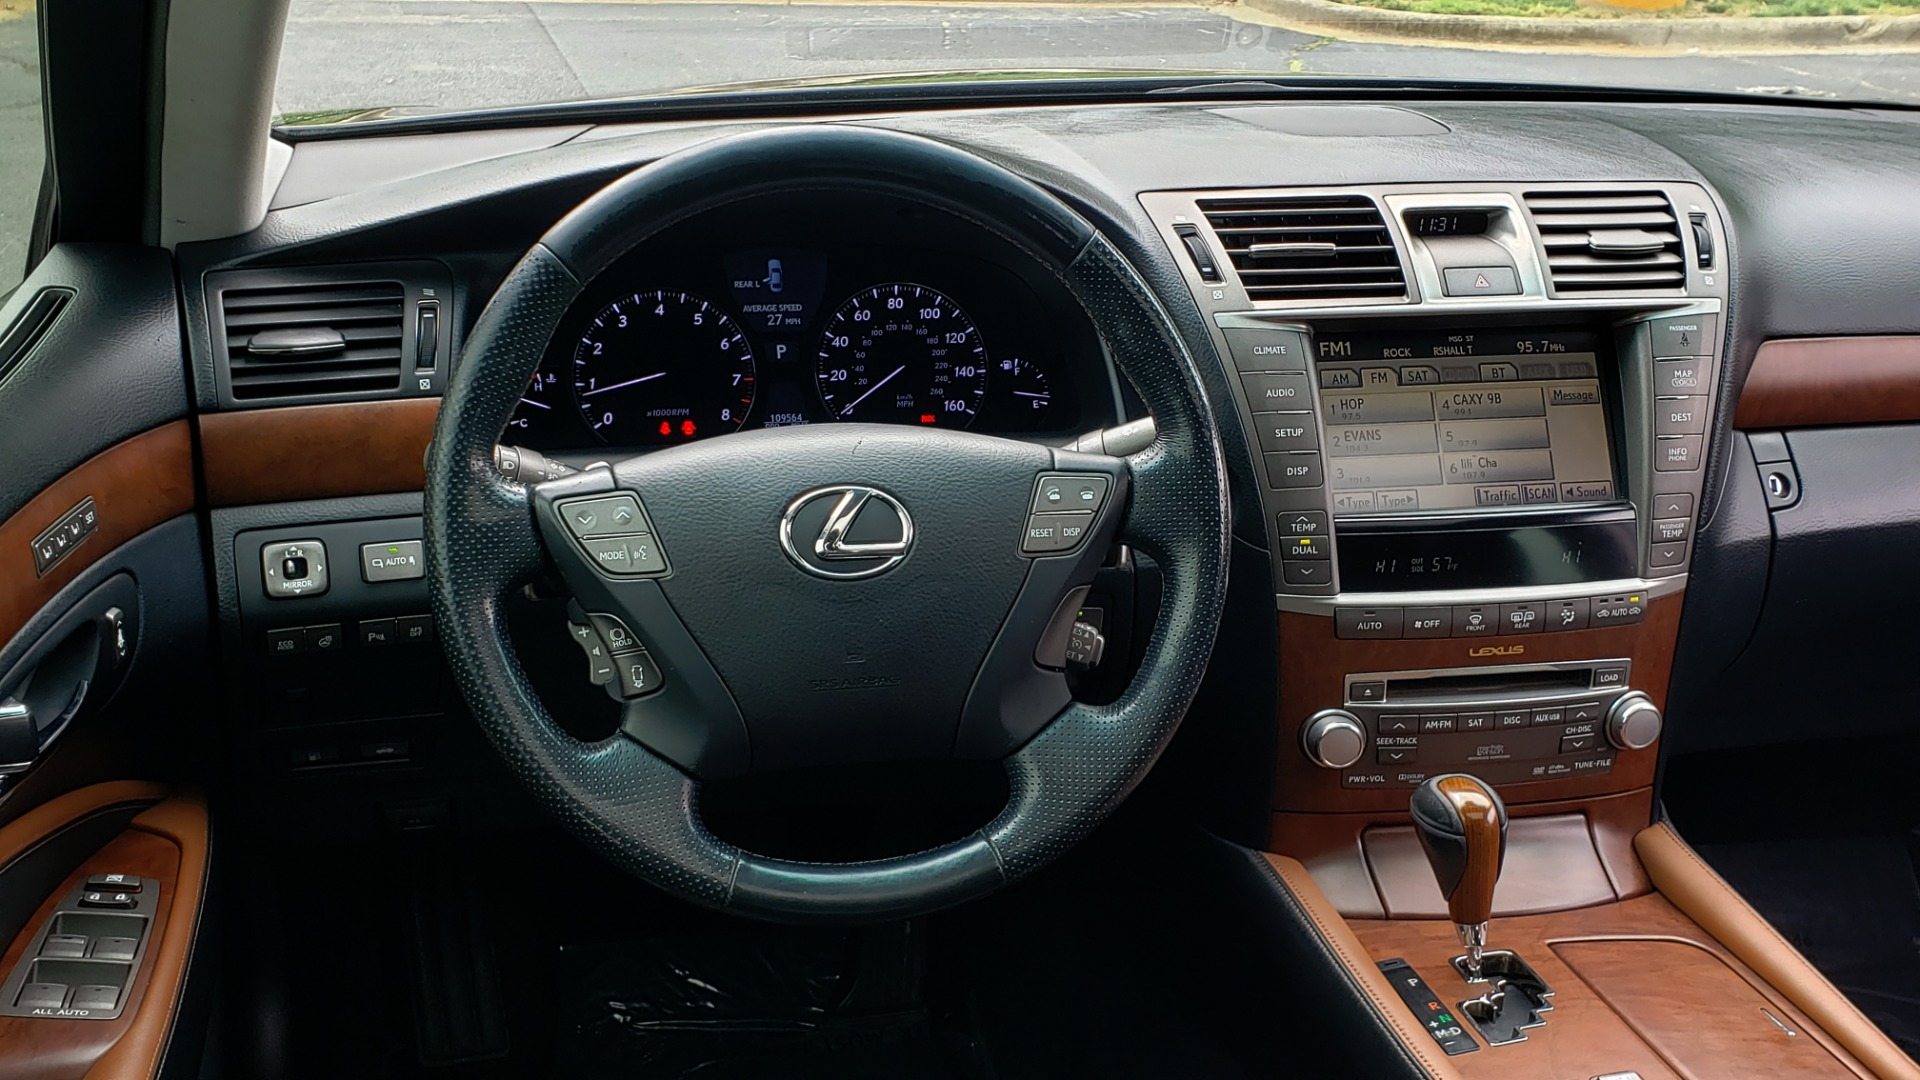 Used 2012 Lexus LS 460 COMFORT W/SPORT / VENT SEATS / NAV / MARK LEV SND / SUNROOF for sale Sold at Formula Imports in Charlotte NC 28227 37